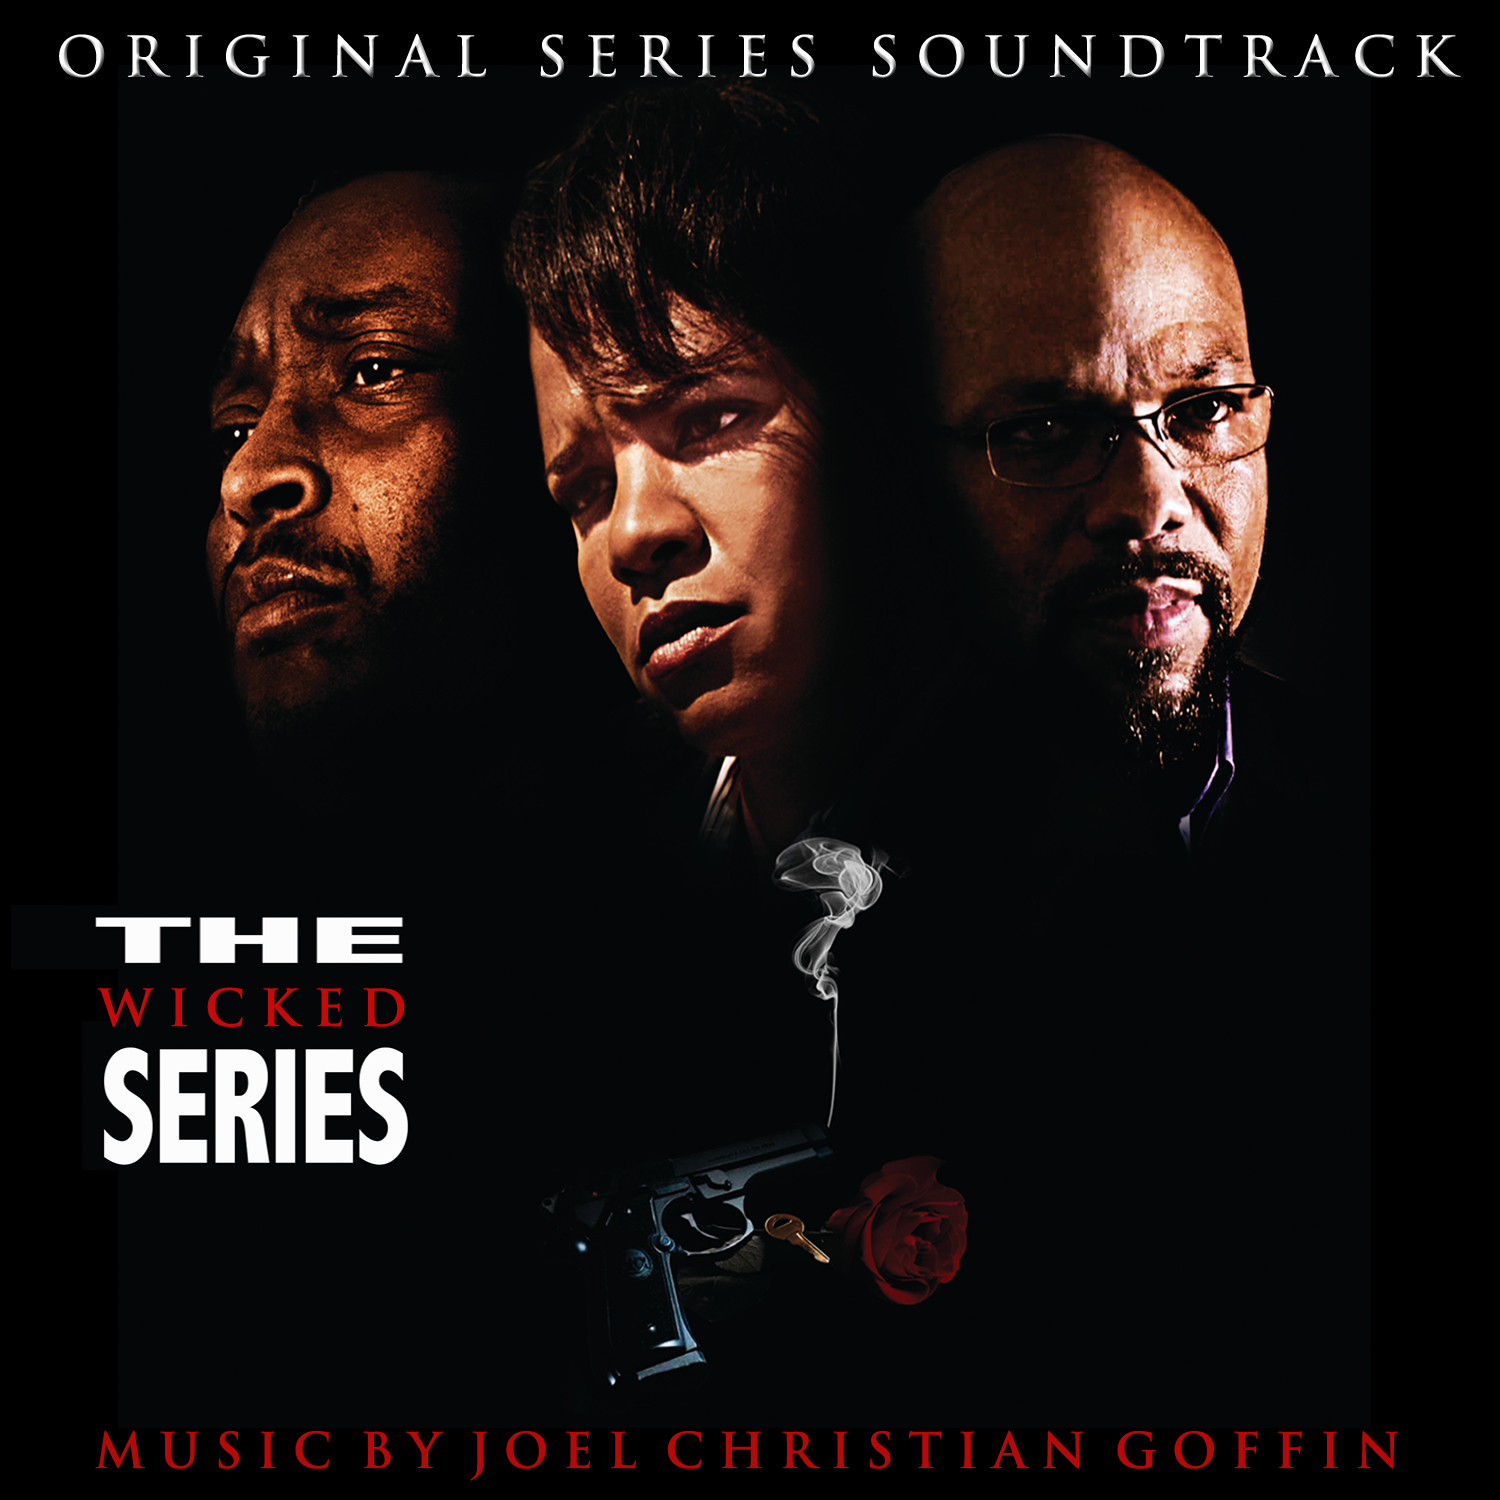 The Wicked Series - Soundtrack - Joel Goffin